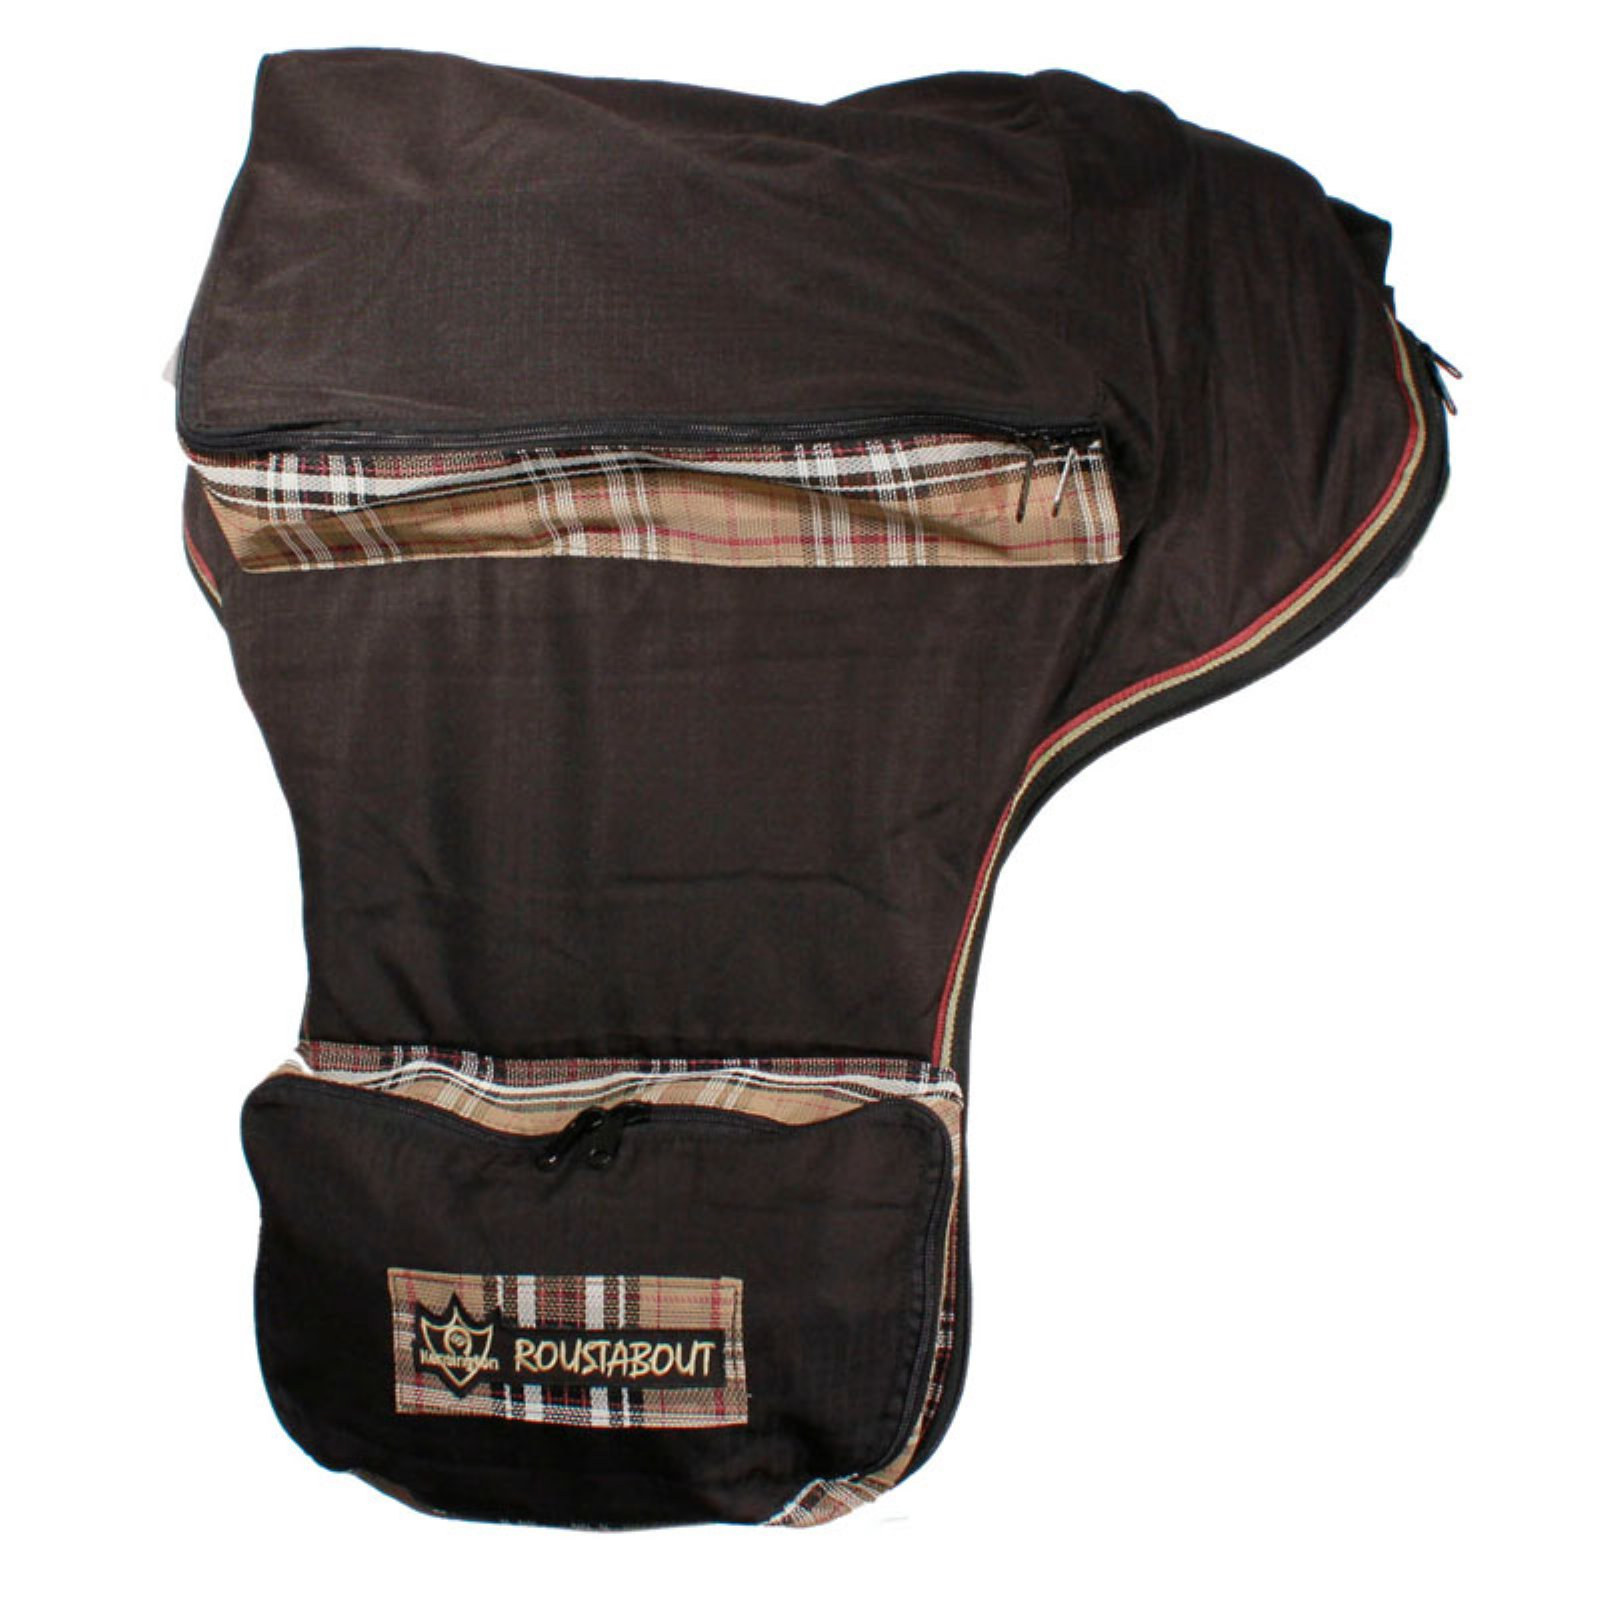 Kensington Protective Products Signature Western Saddle Carrier